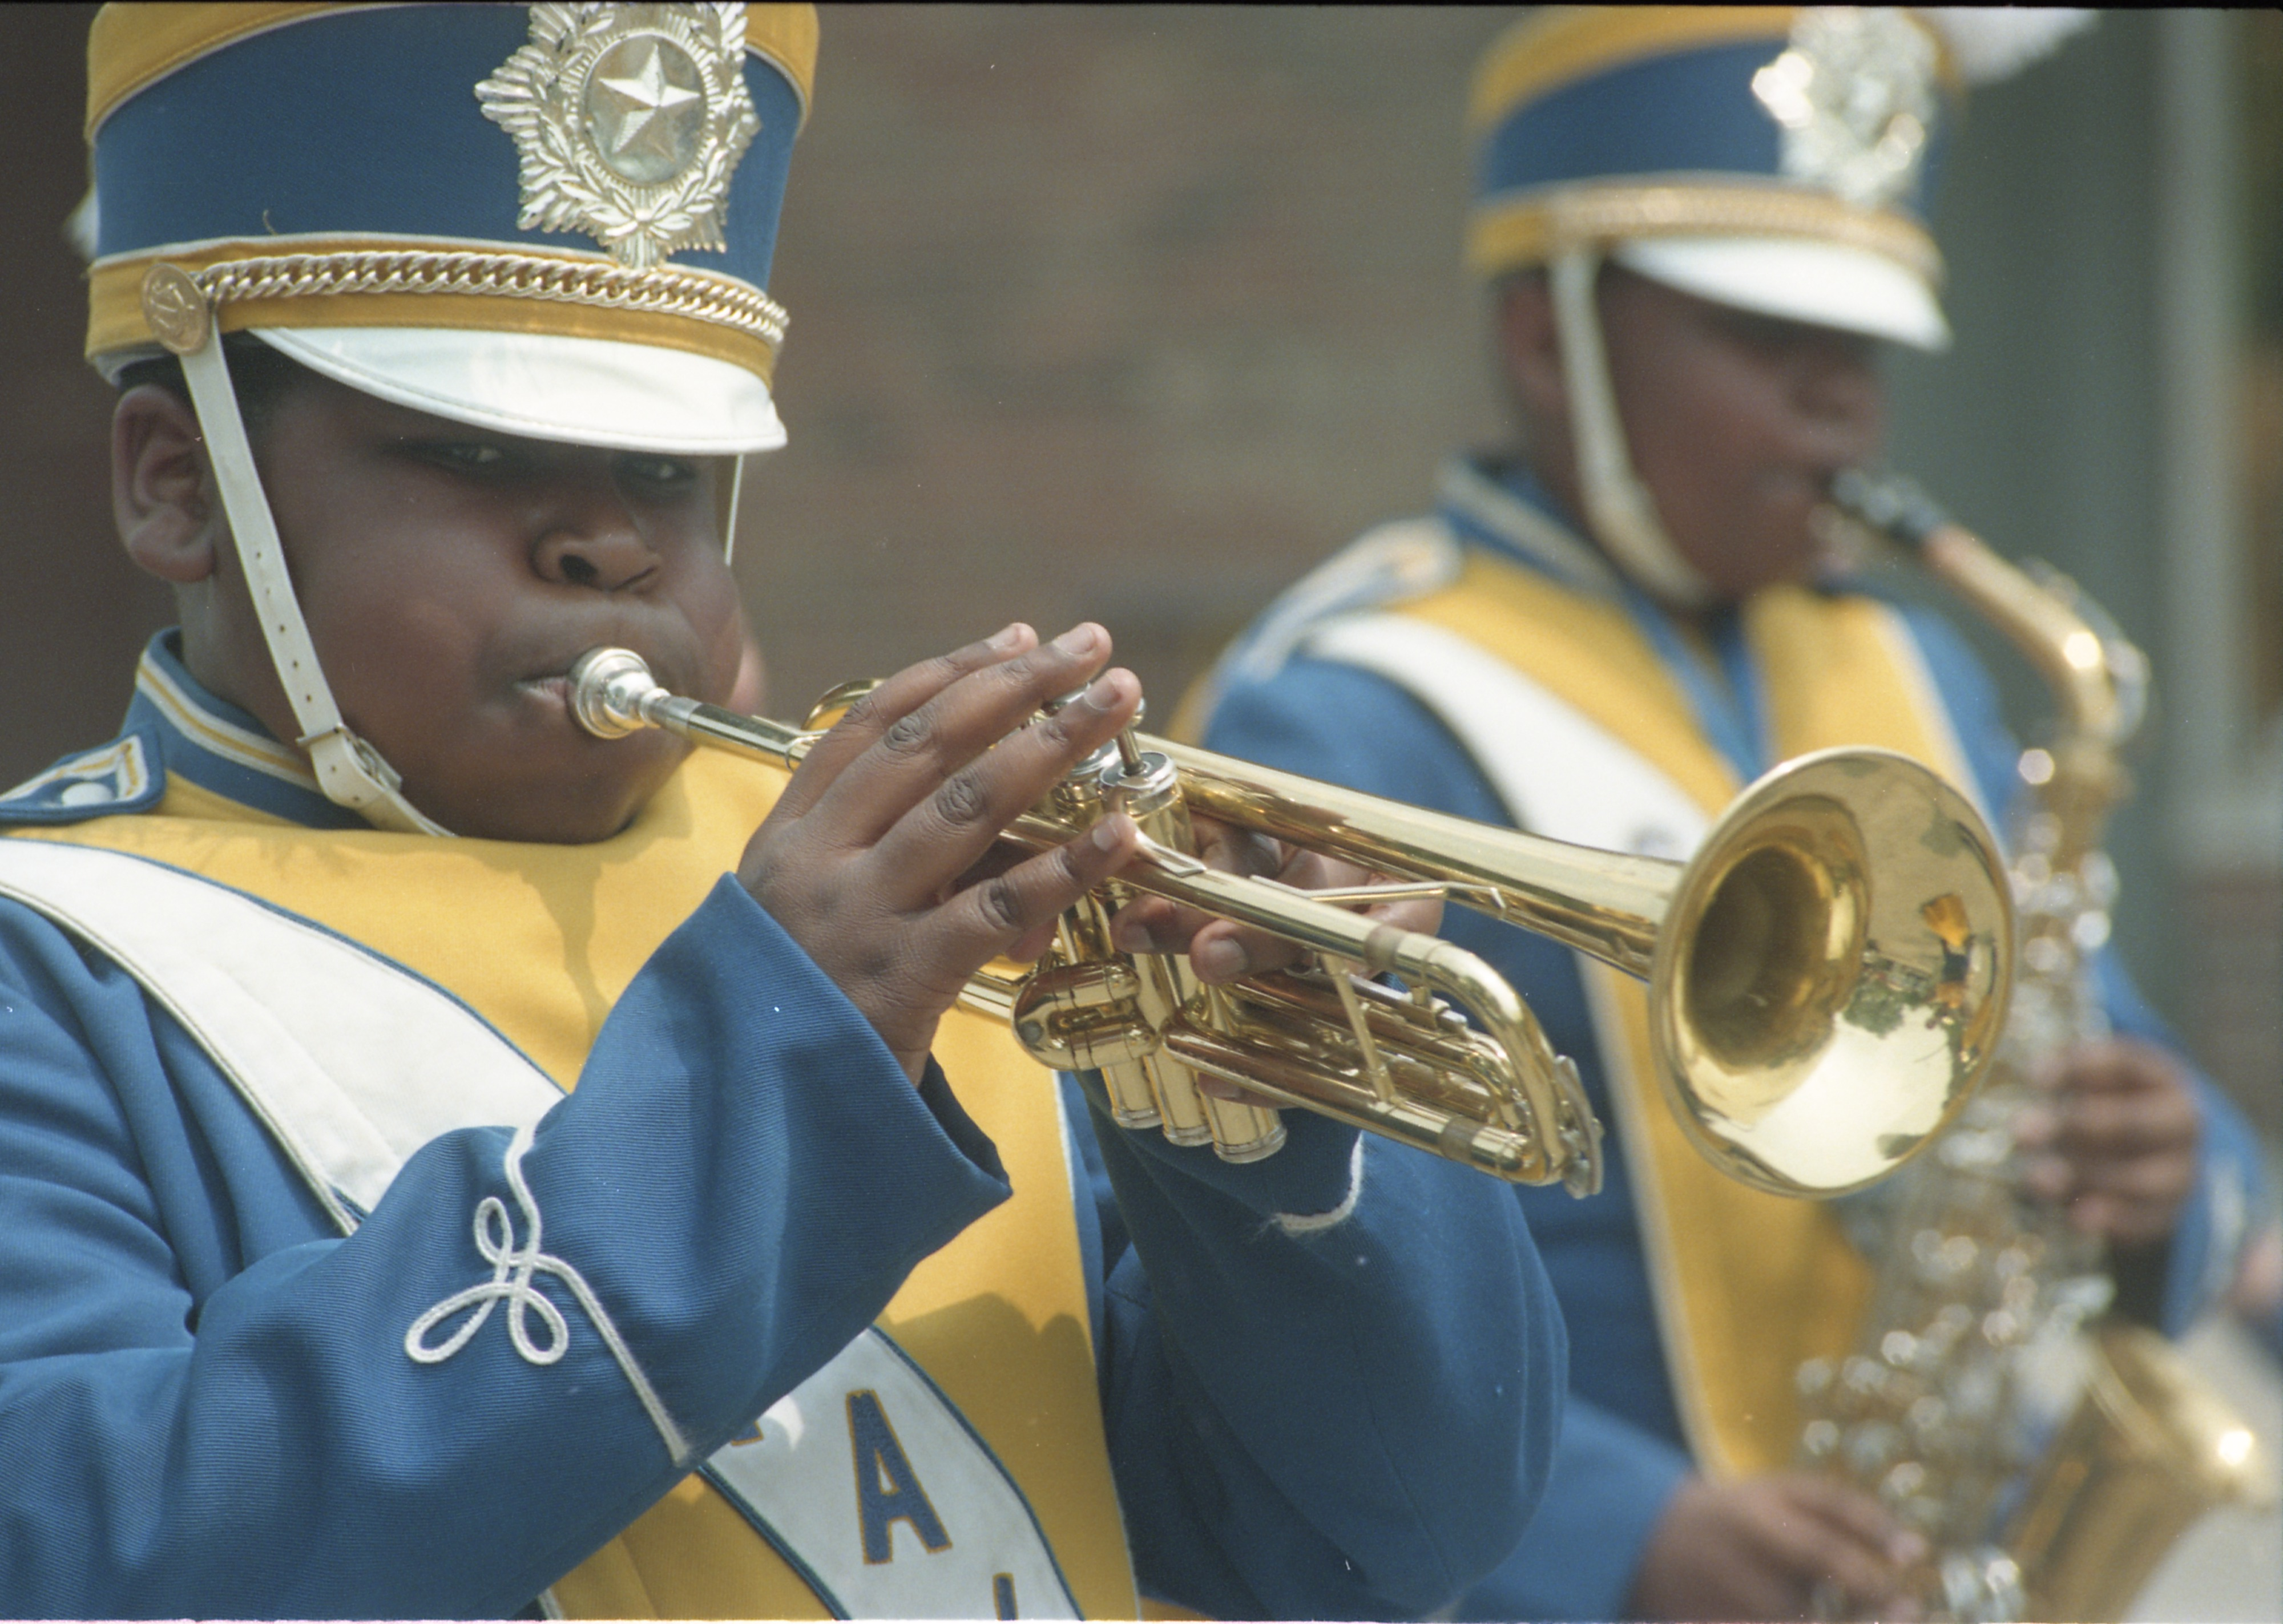 Trumpeter In Marching Band At The Royal Hanneford Circus Parade, June 23, 1995 image